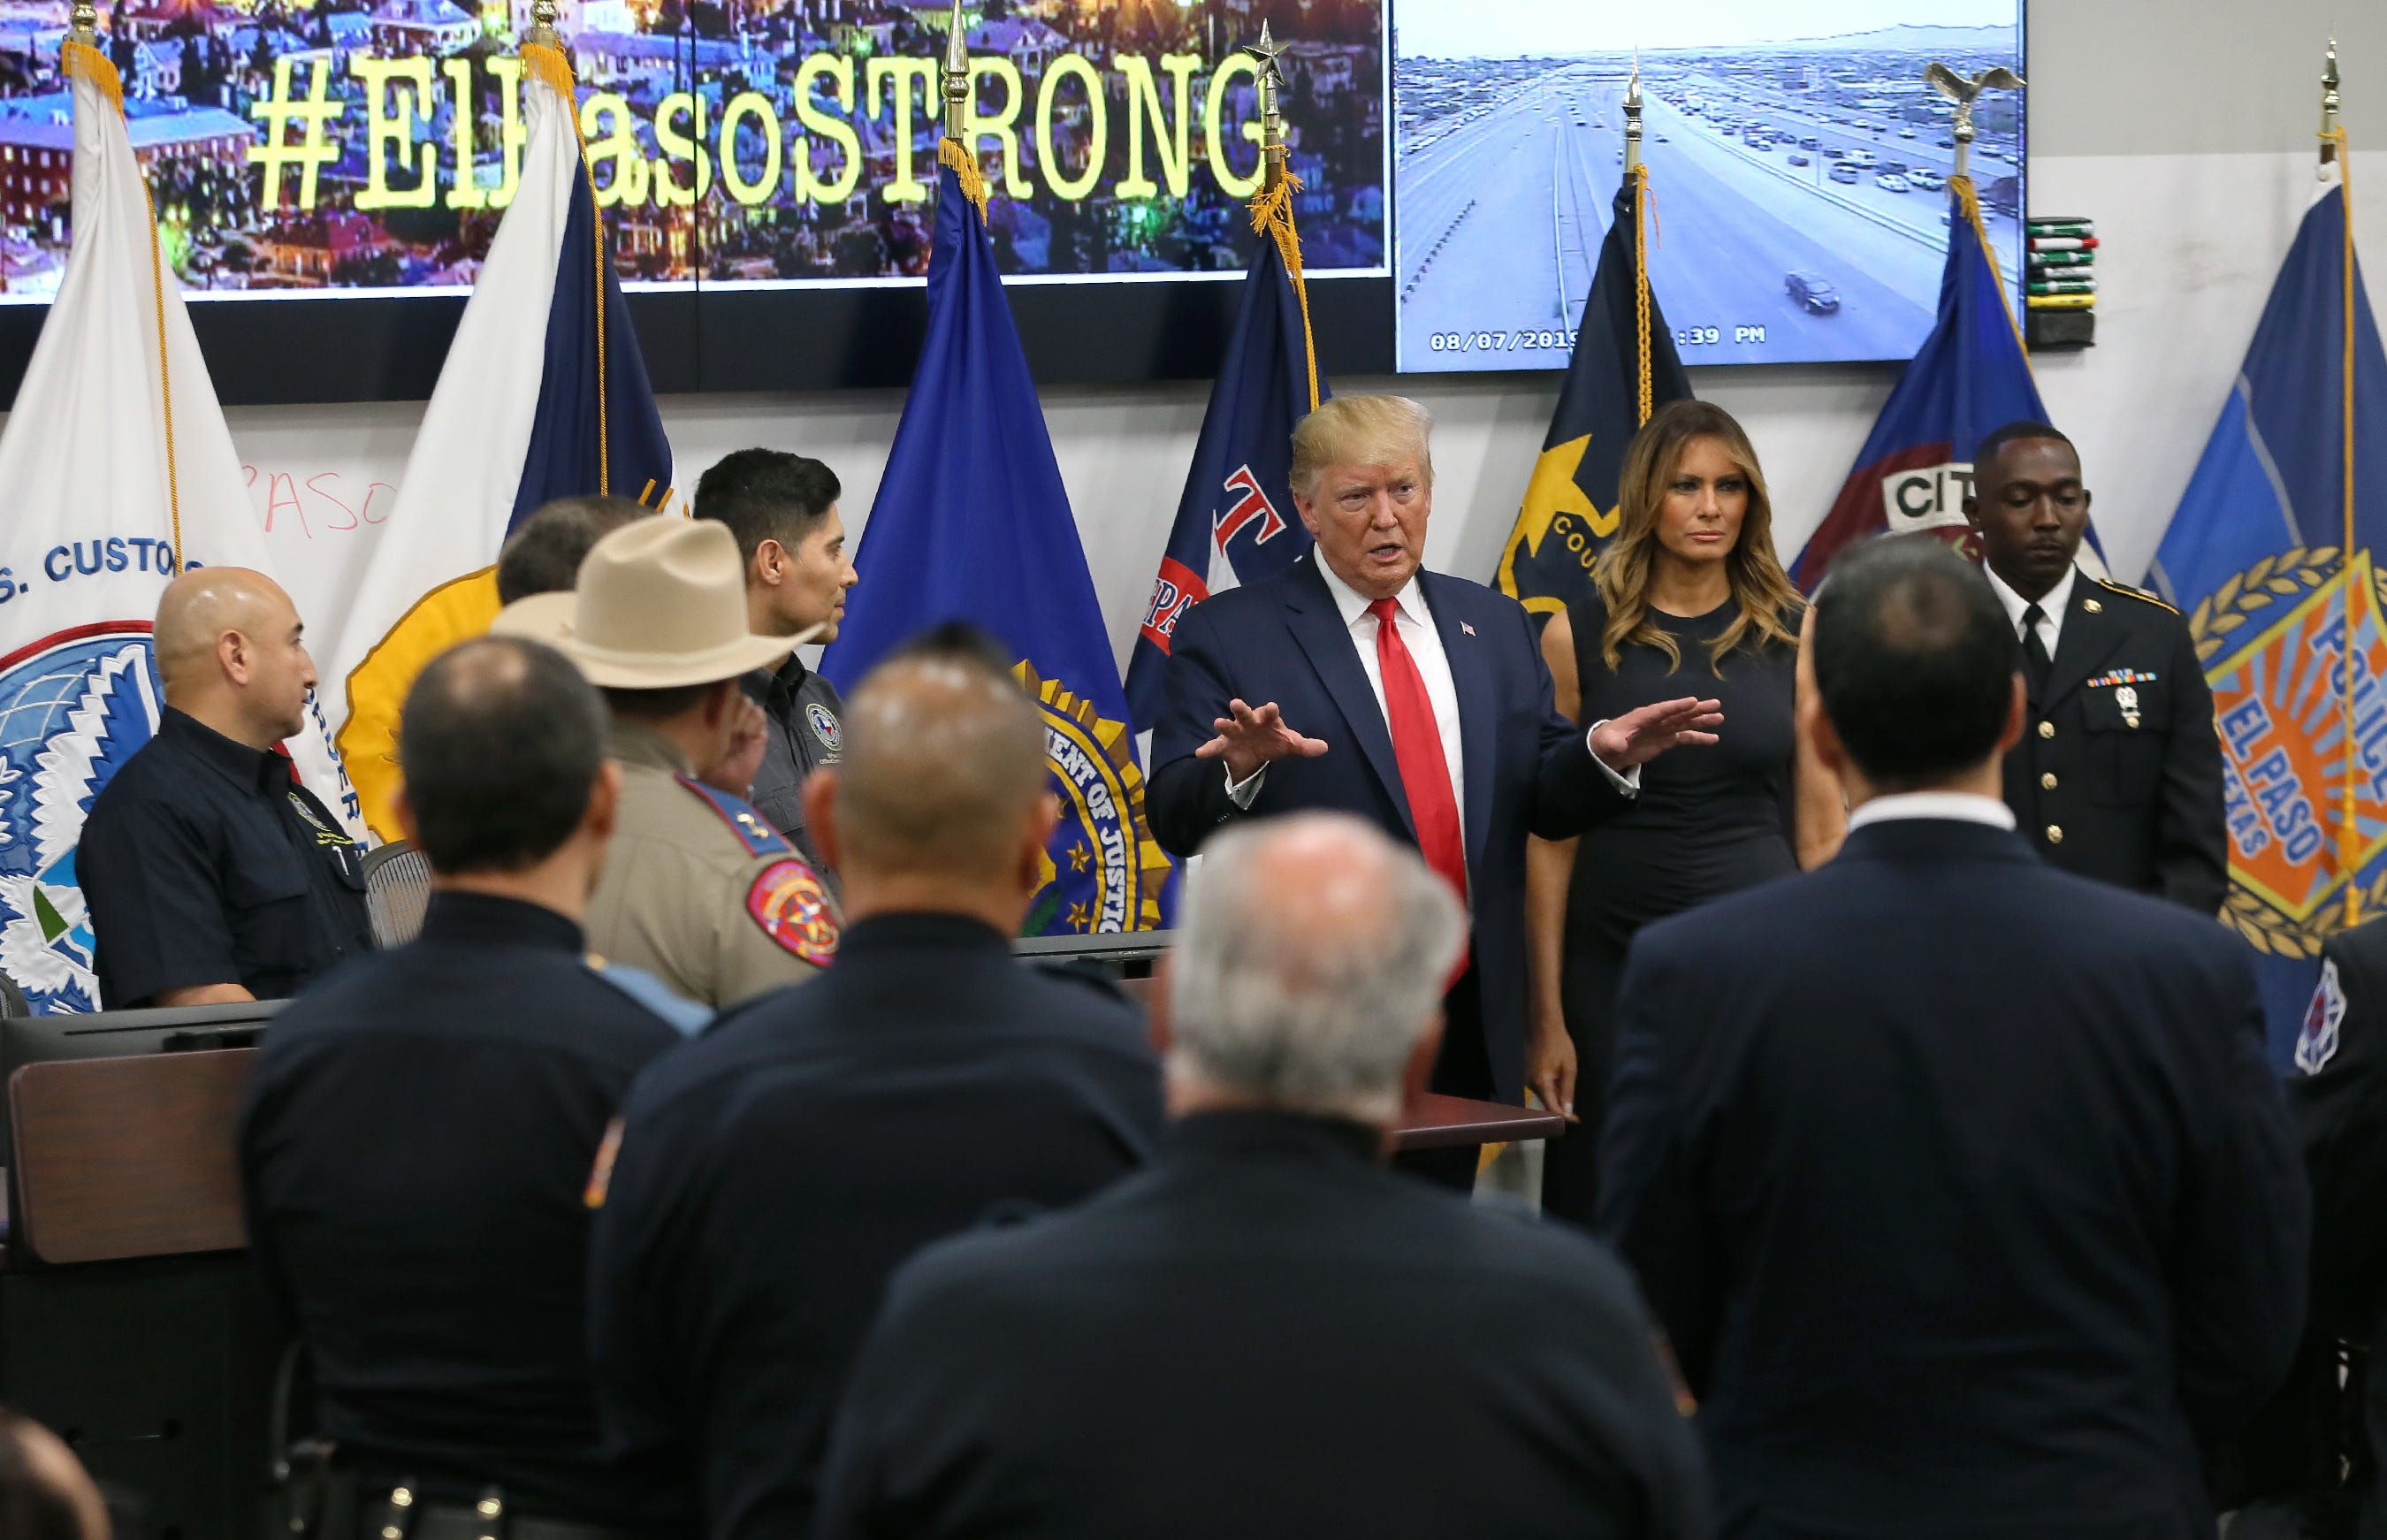 President Donald Trump speaks Wednesday, Aug. 7, 2019, at the Office of Emergency Management in El Paso, Texas. Trump met with first responders who were at the scene of the mass shooting that killed 22 and wounded 25.